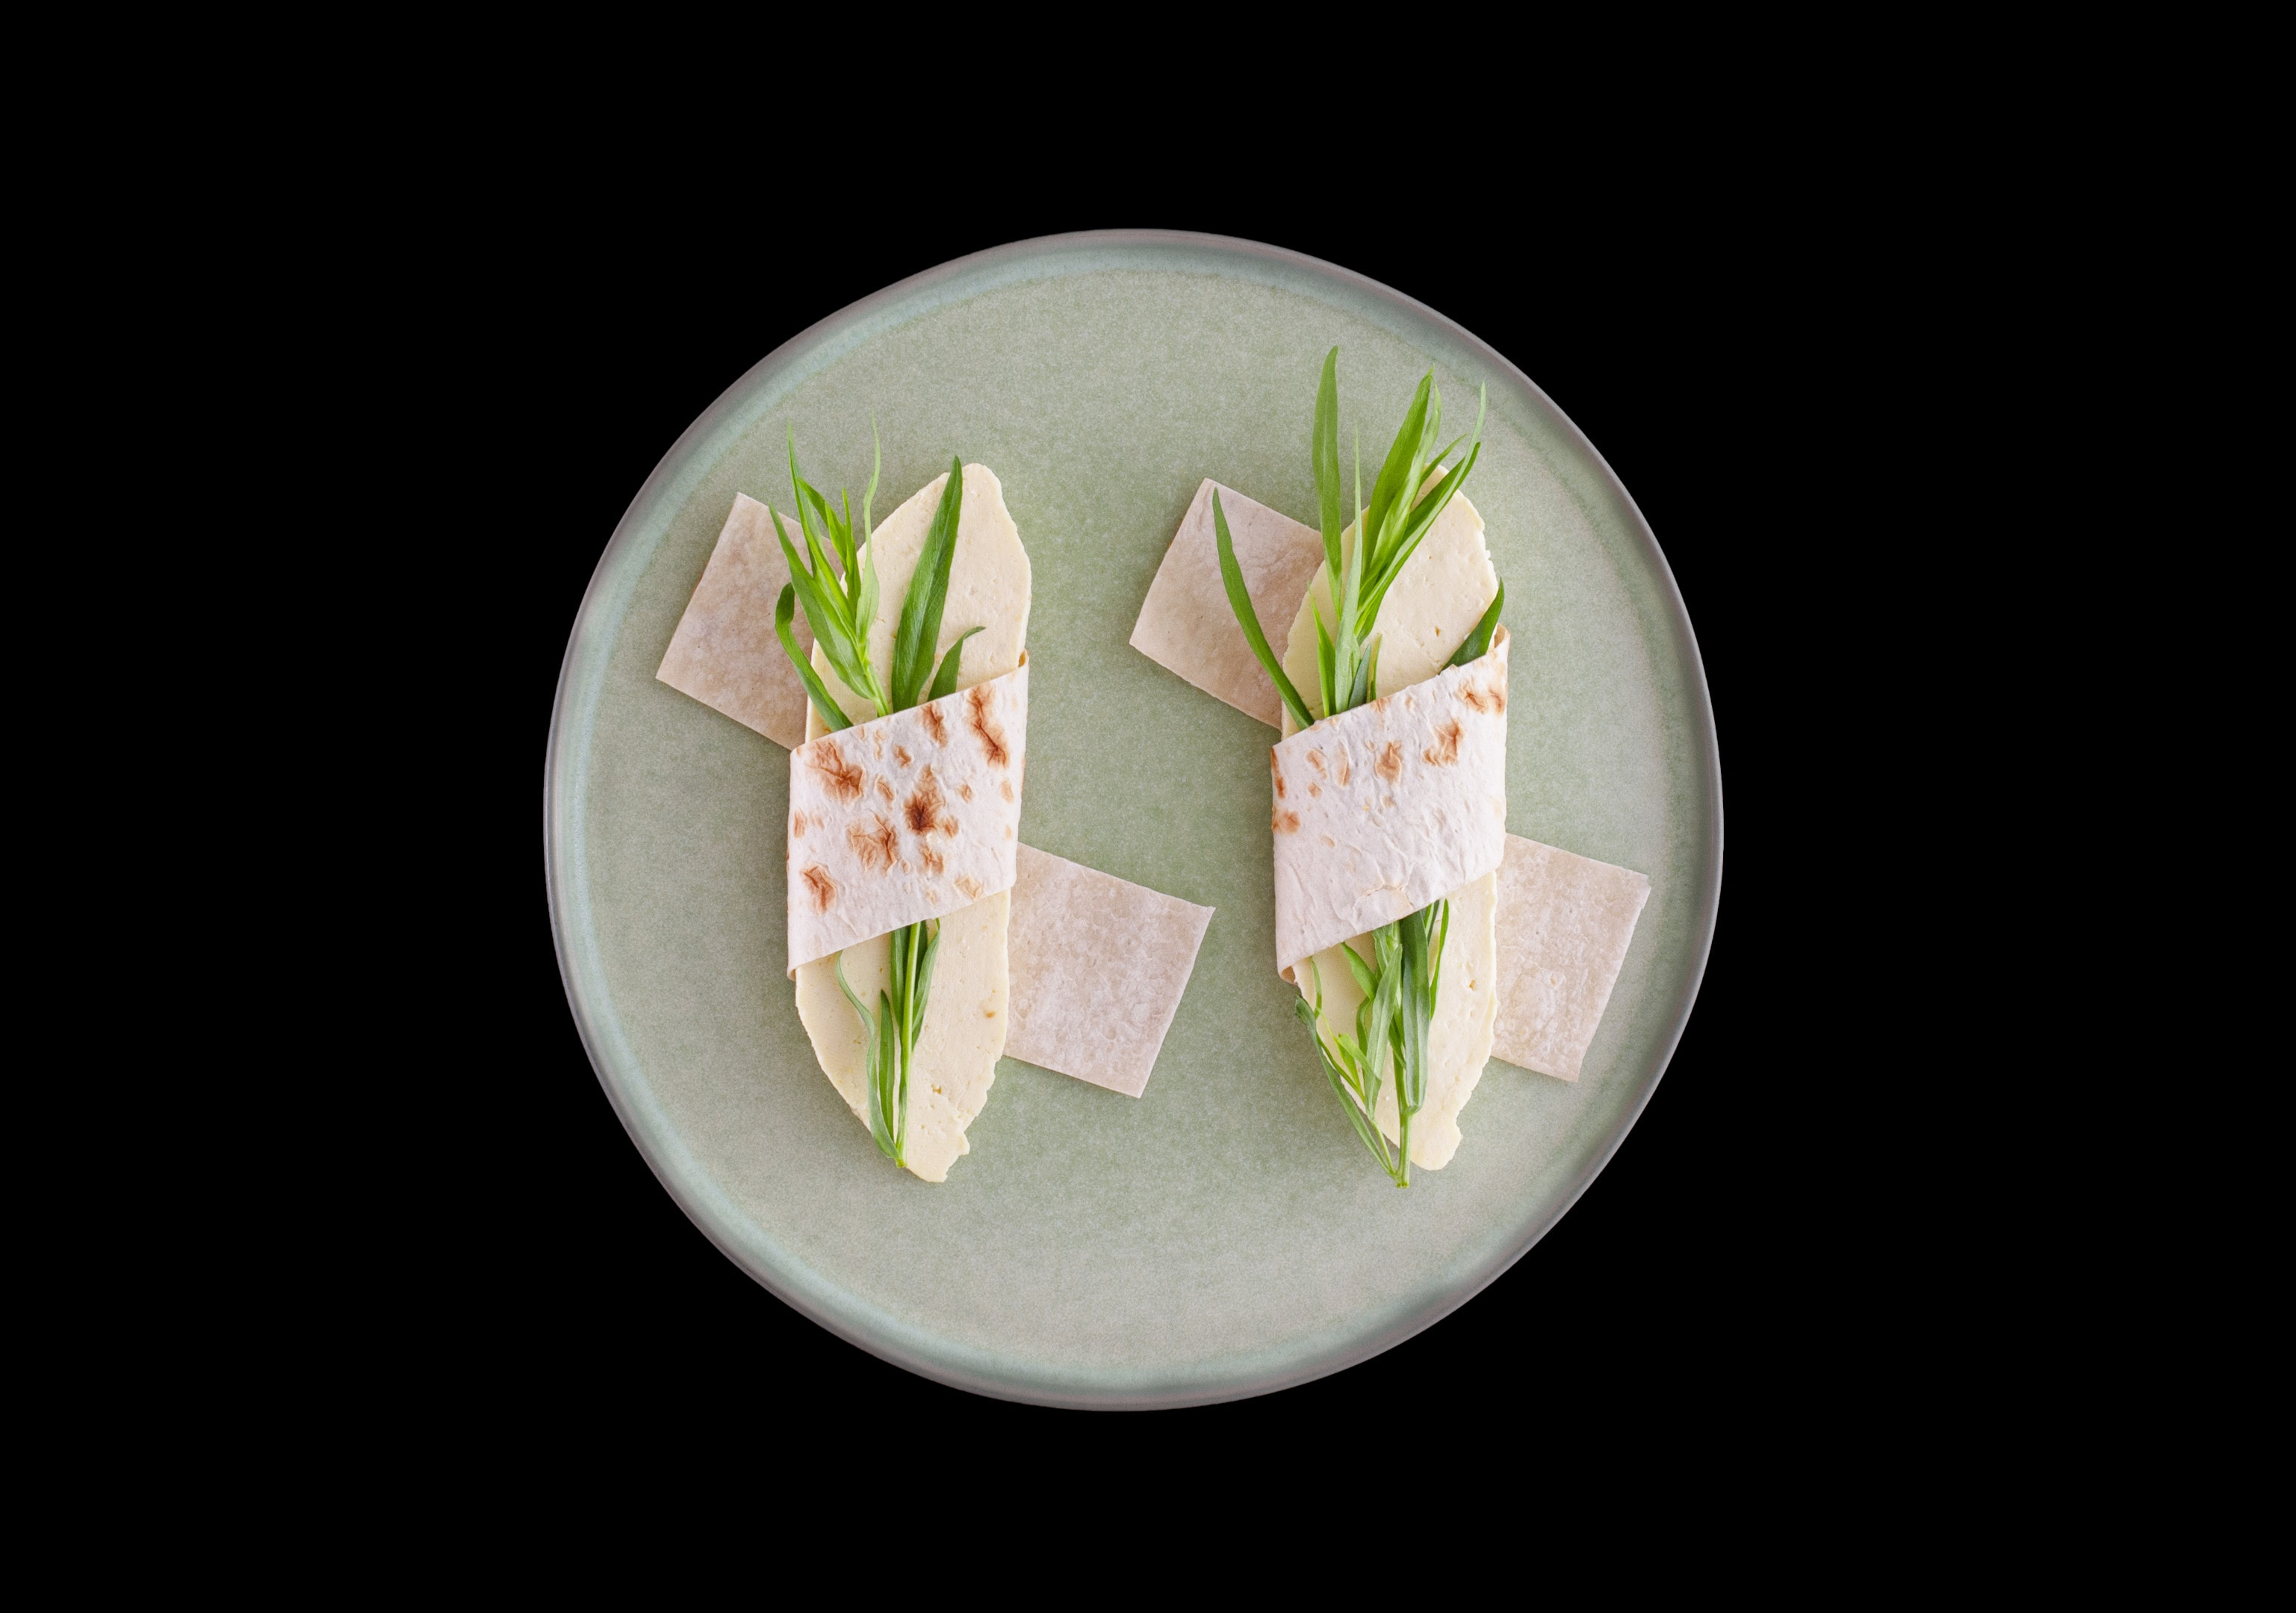 Wrapped pita bread with homemade cheese and semi-dry tarragon leaves on round plate